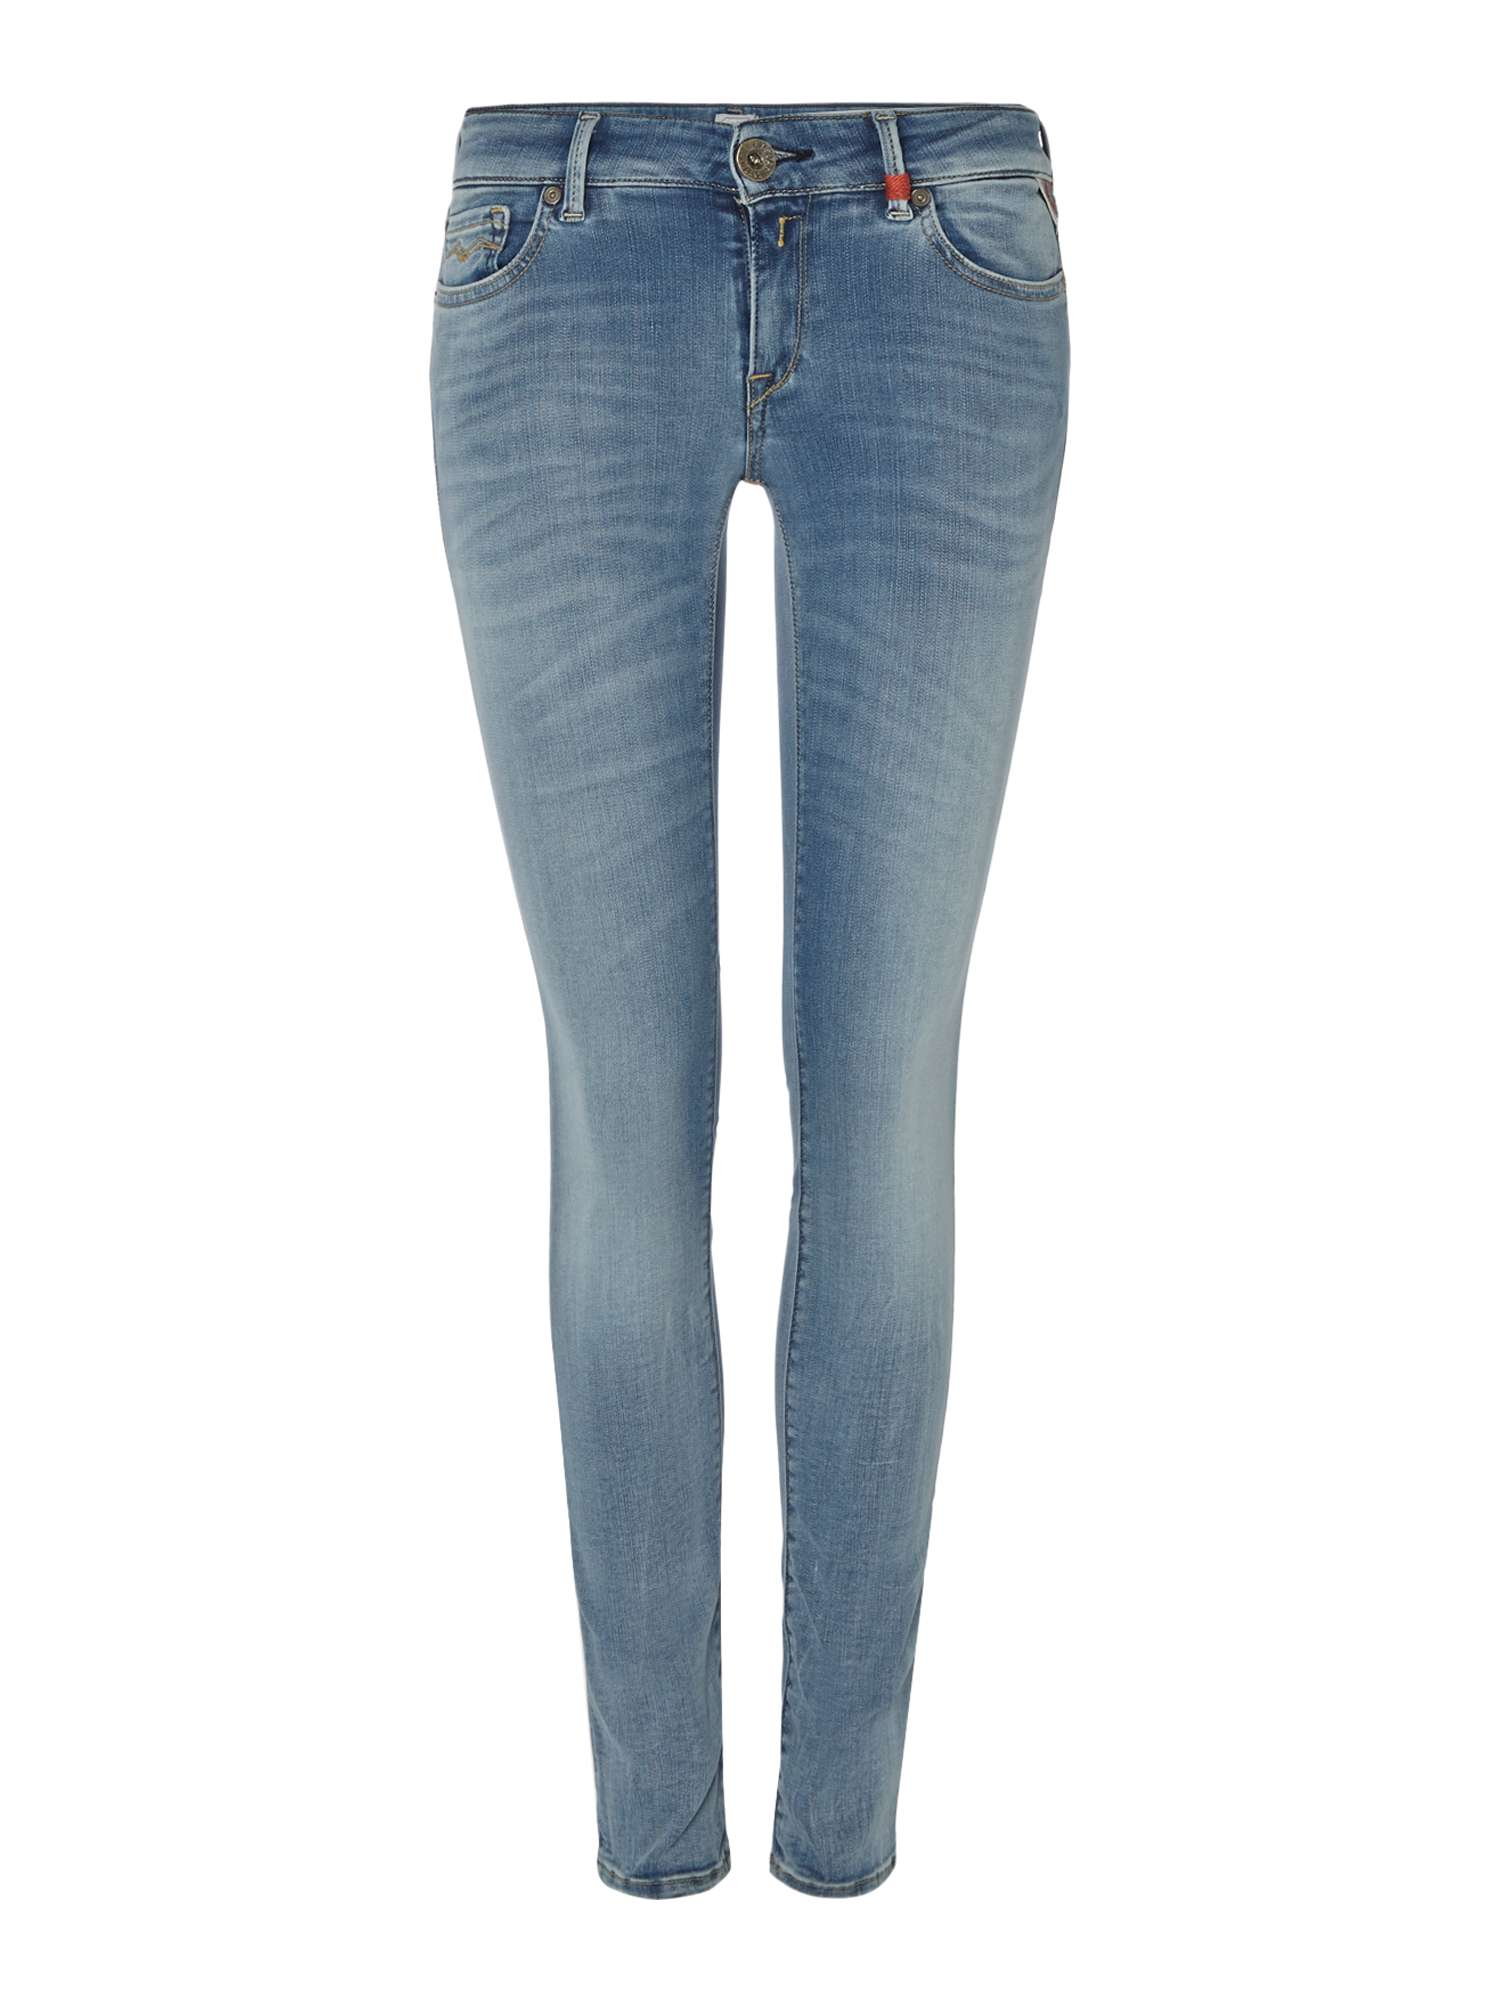 Replay Hyperflex Luz Skinny Luz Jeans Replay Skinny qaPO17qr